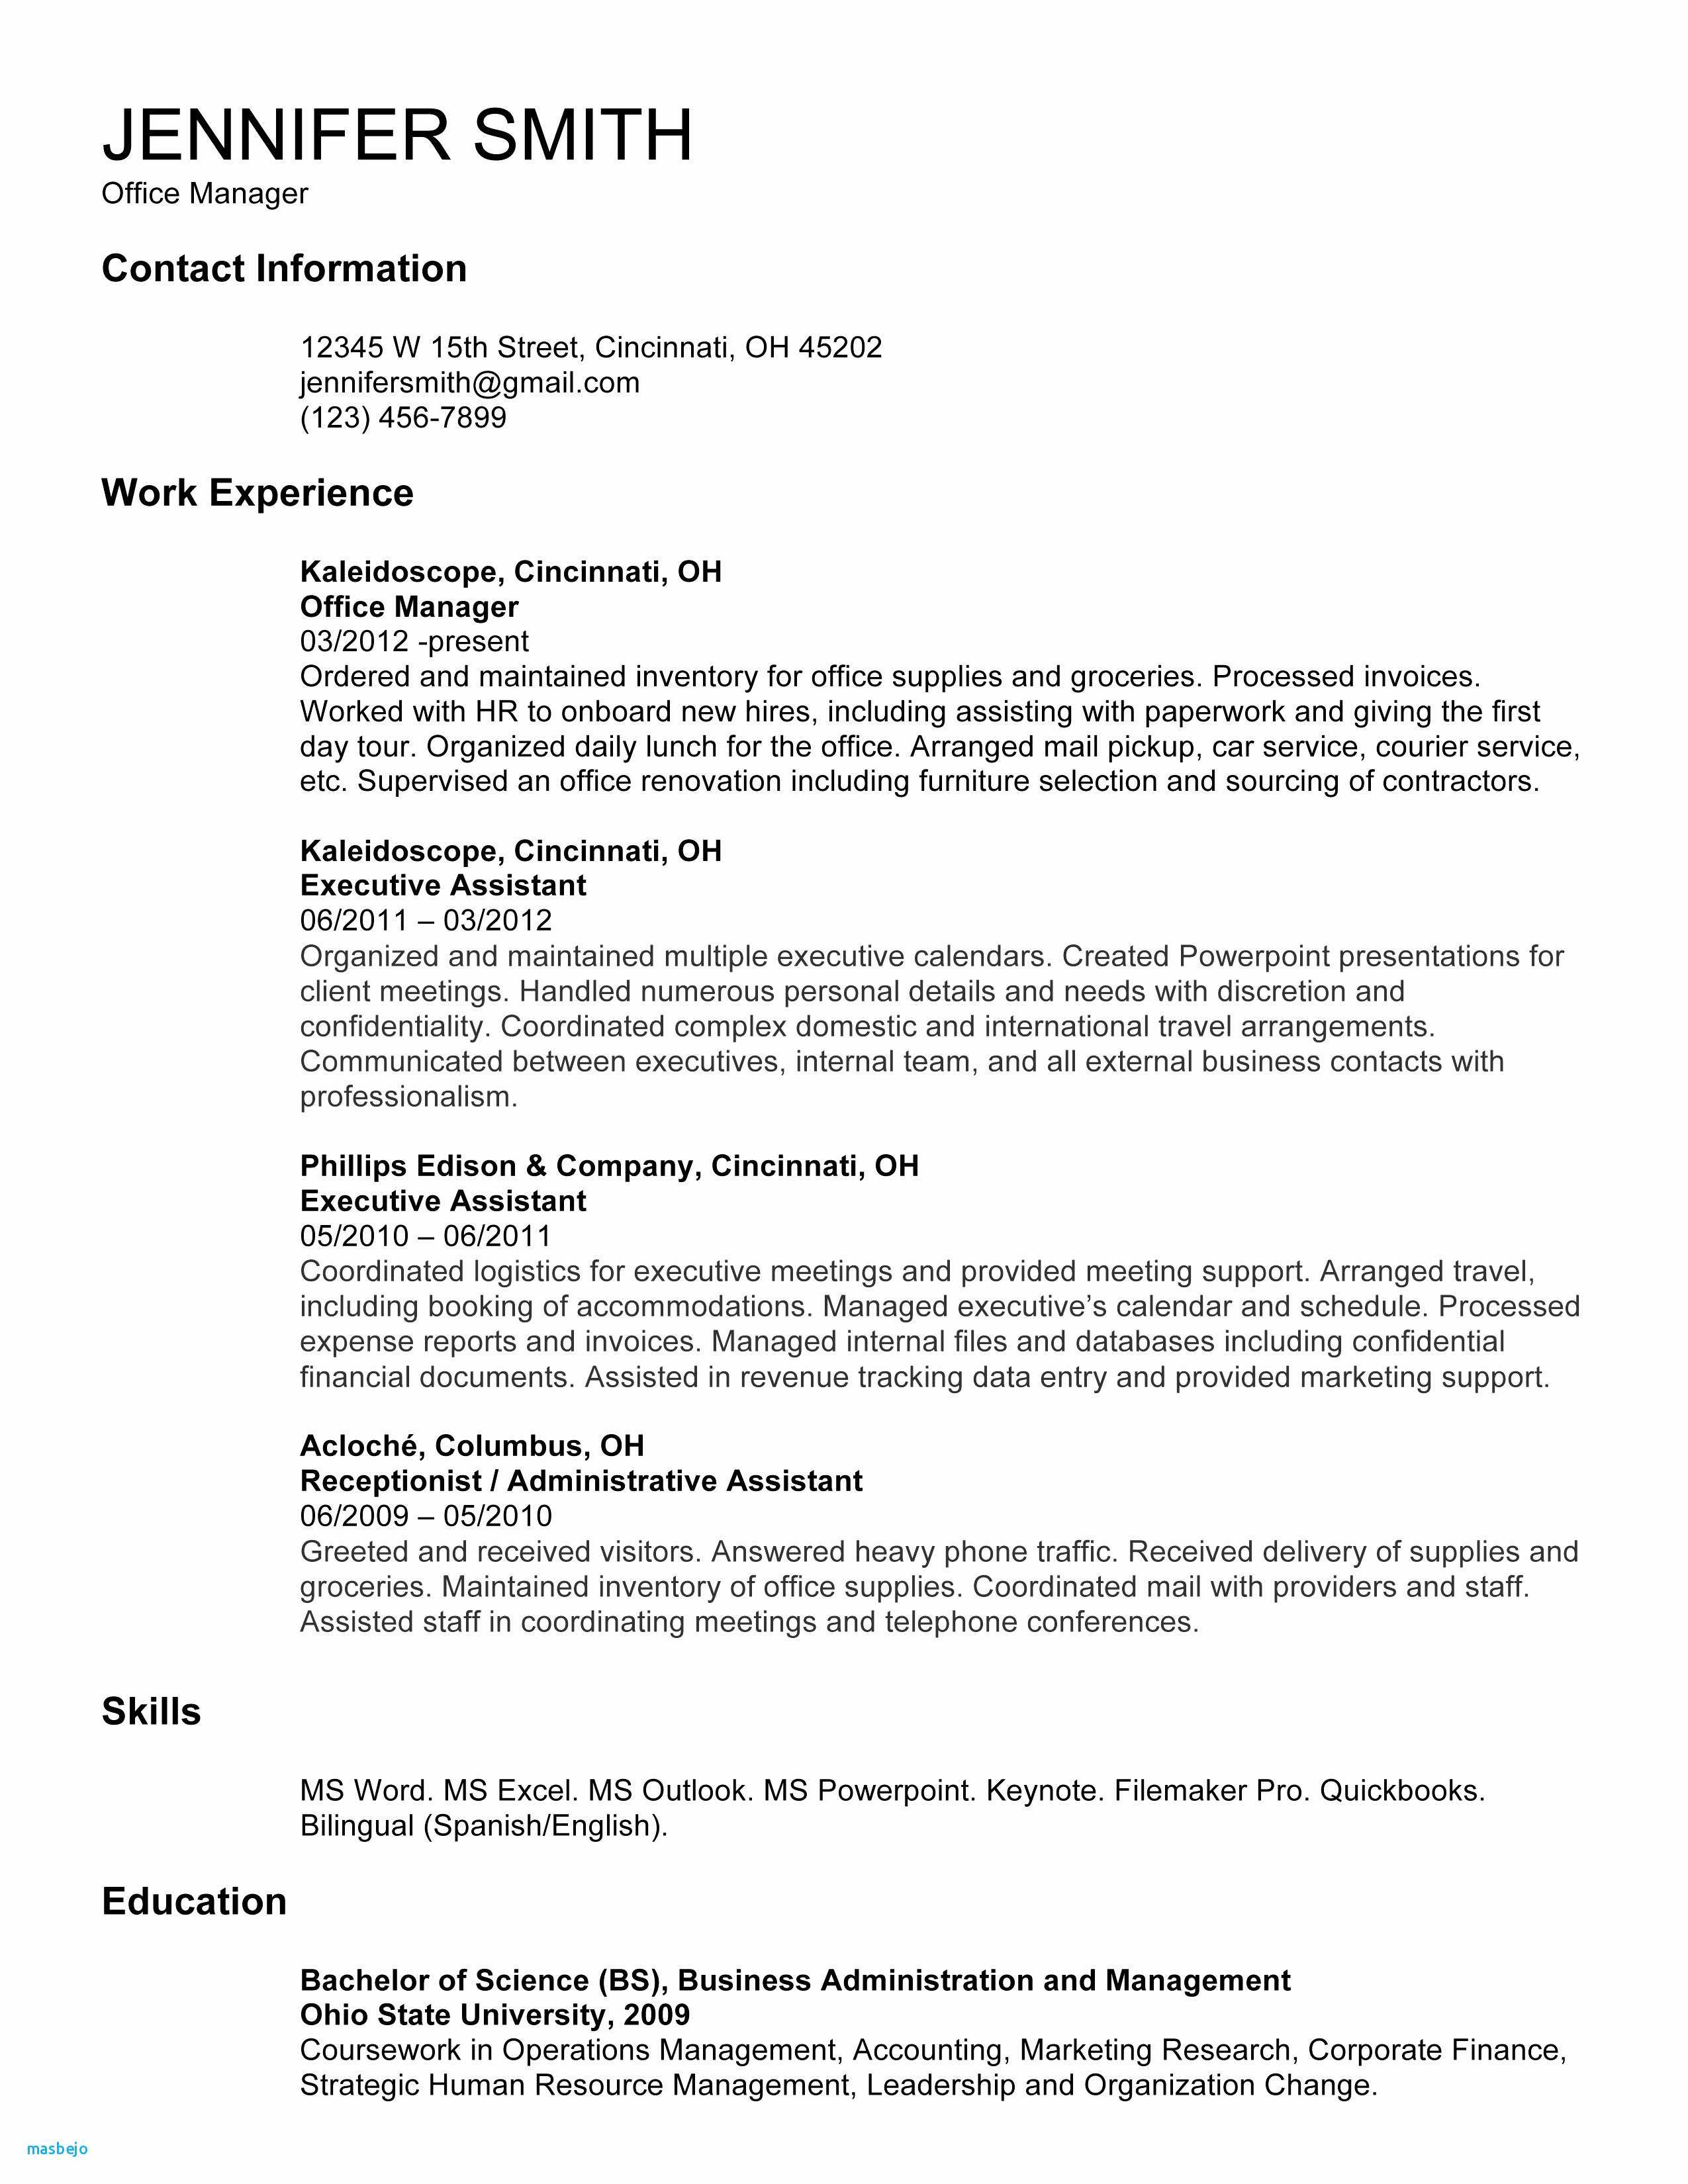 Medical Office Manager Resume Examples - Inspirational Sample Fice Manager Resume